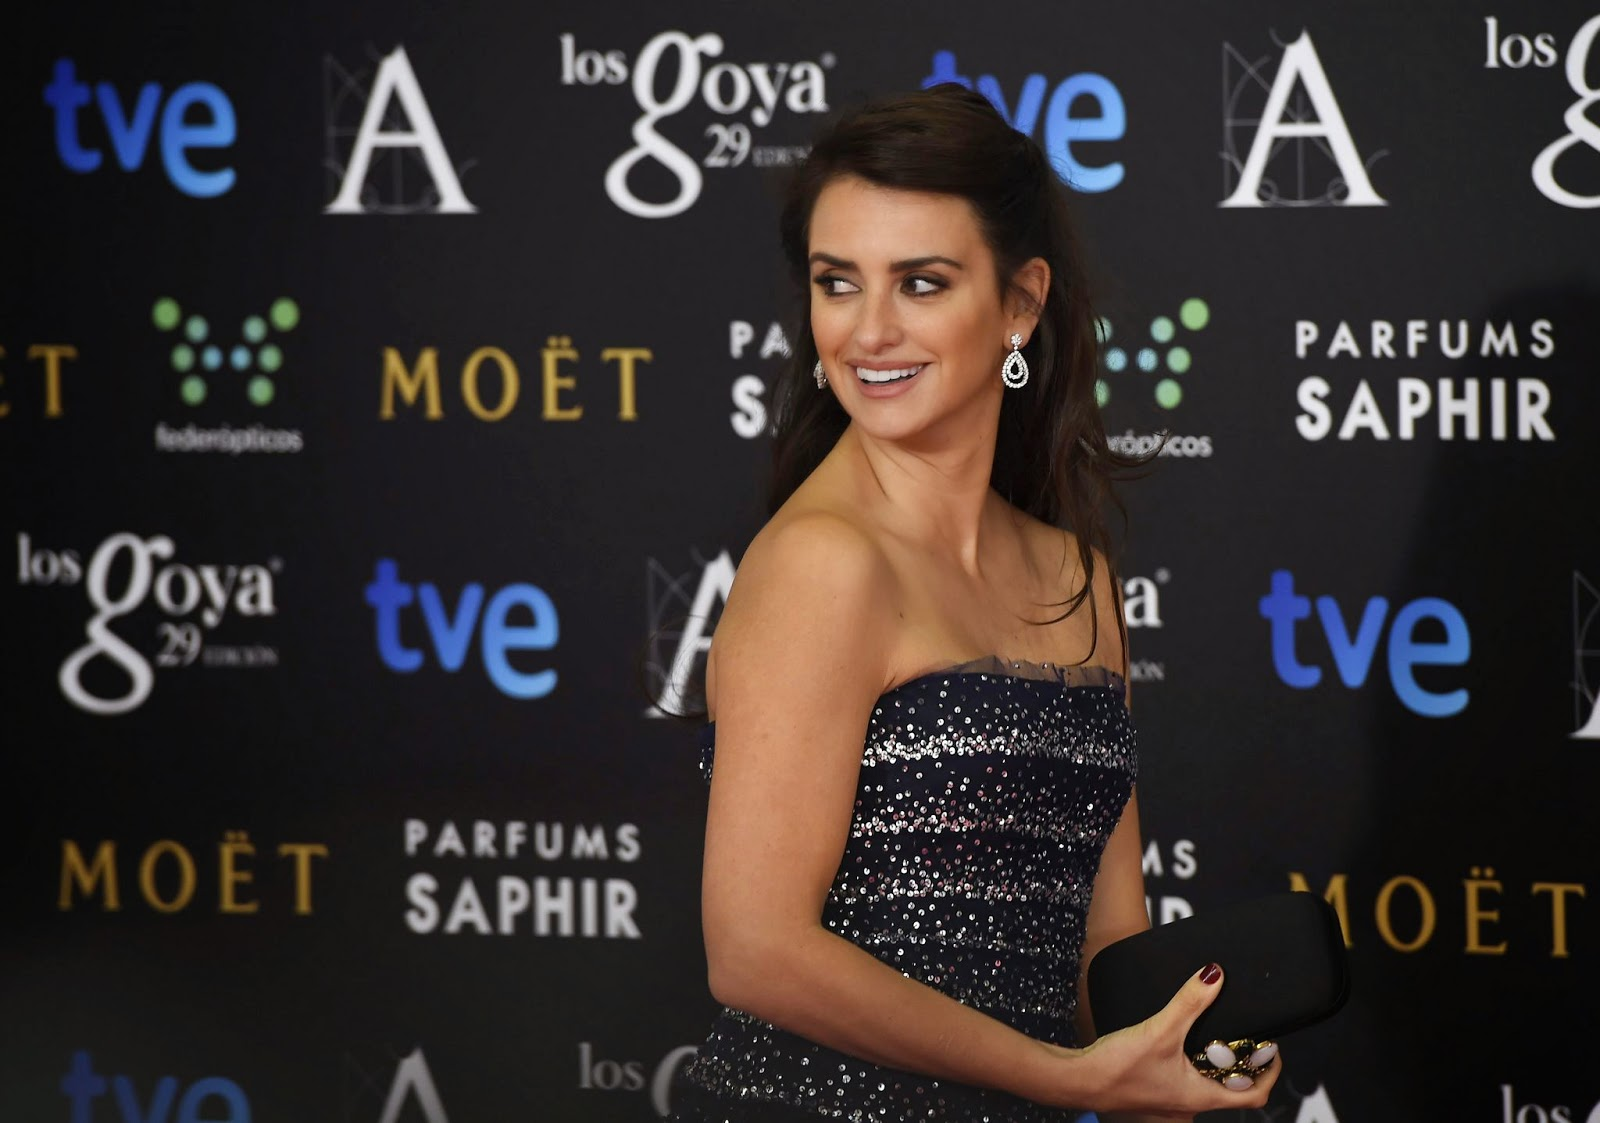 Penelope Cruz dazzles in a strapless navy blue gown at the 2015 Goya Film Awards in Madrid